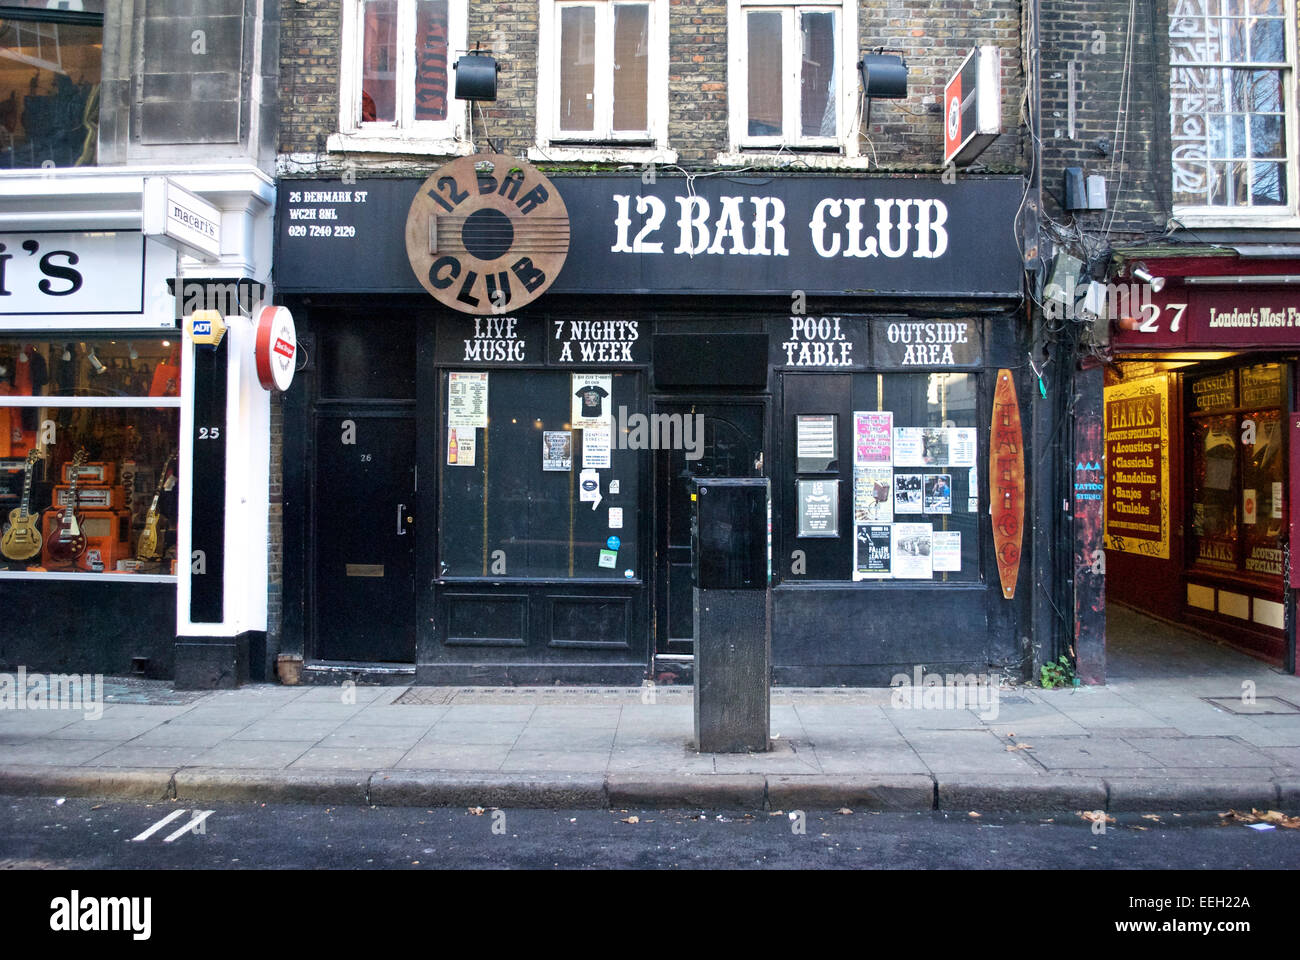 The exterior of the now-defunct 12 Bar Club in Denmark Street, London Stock Photo